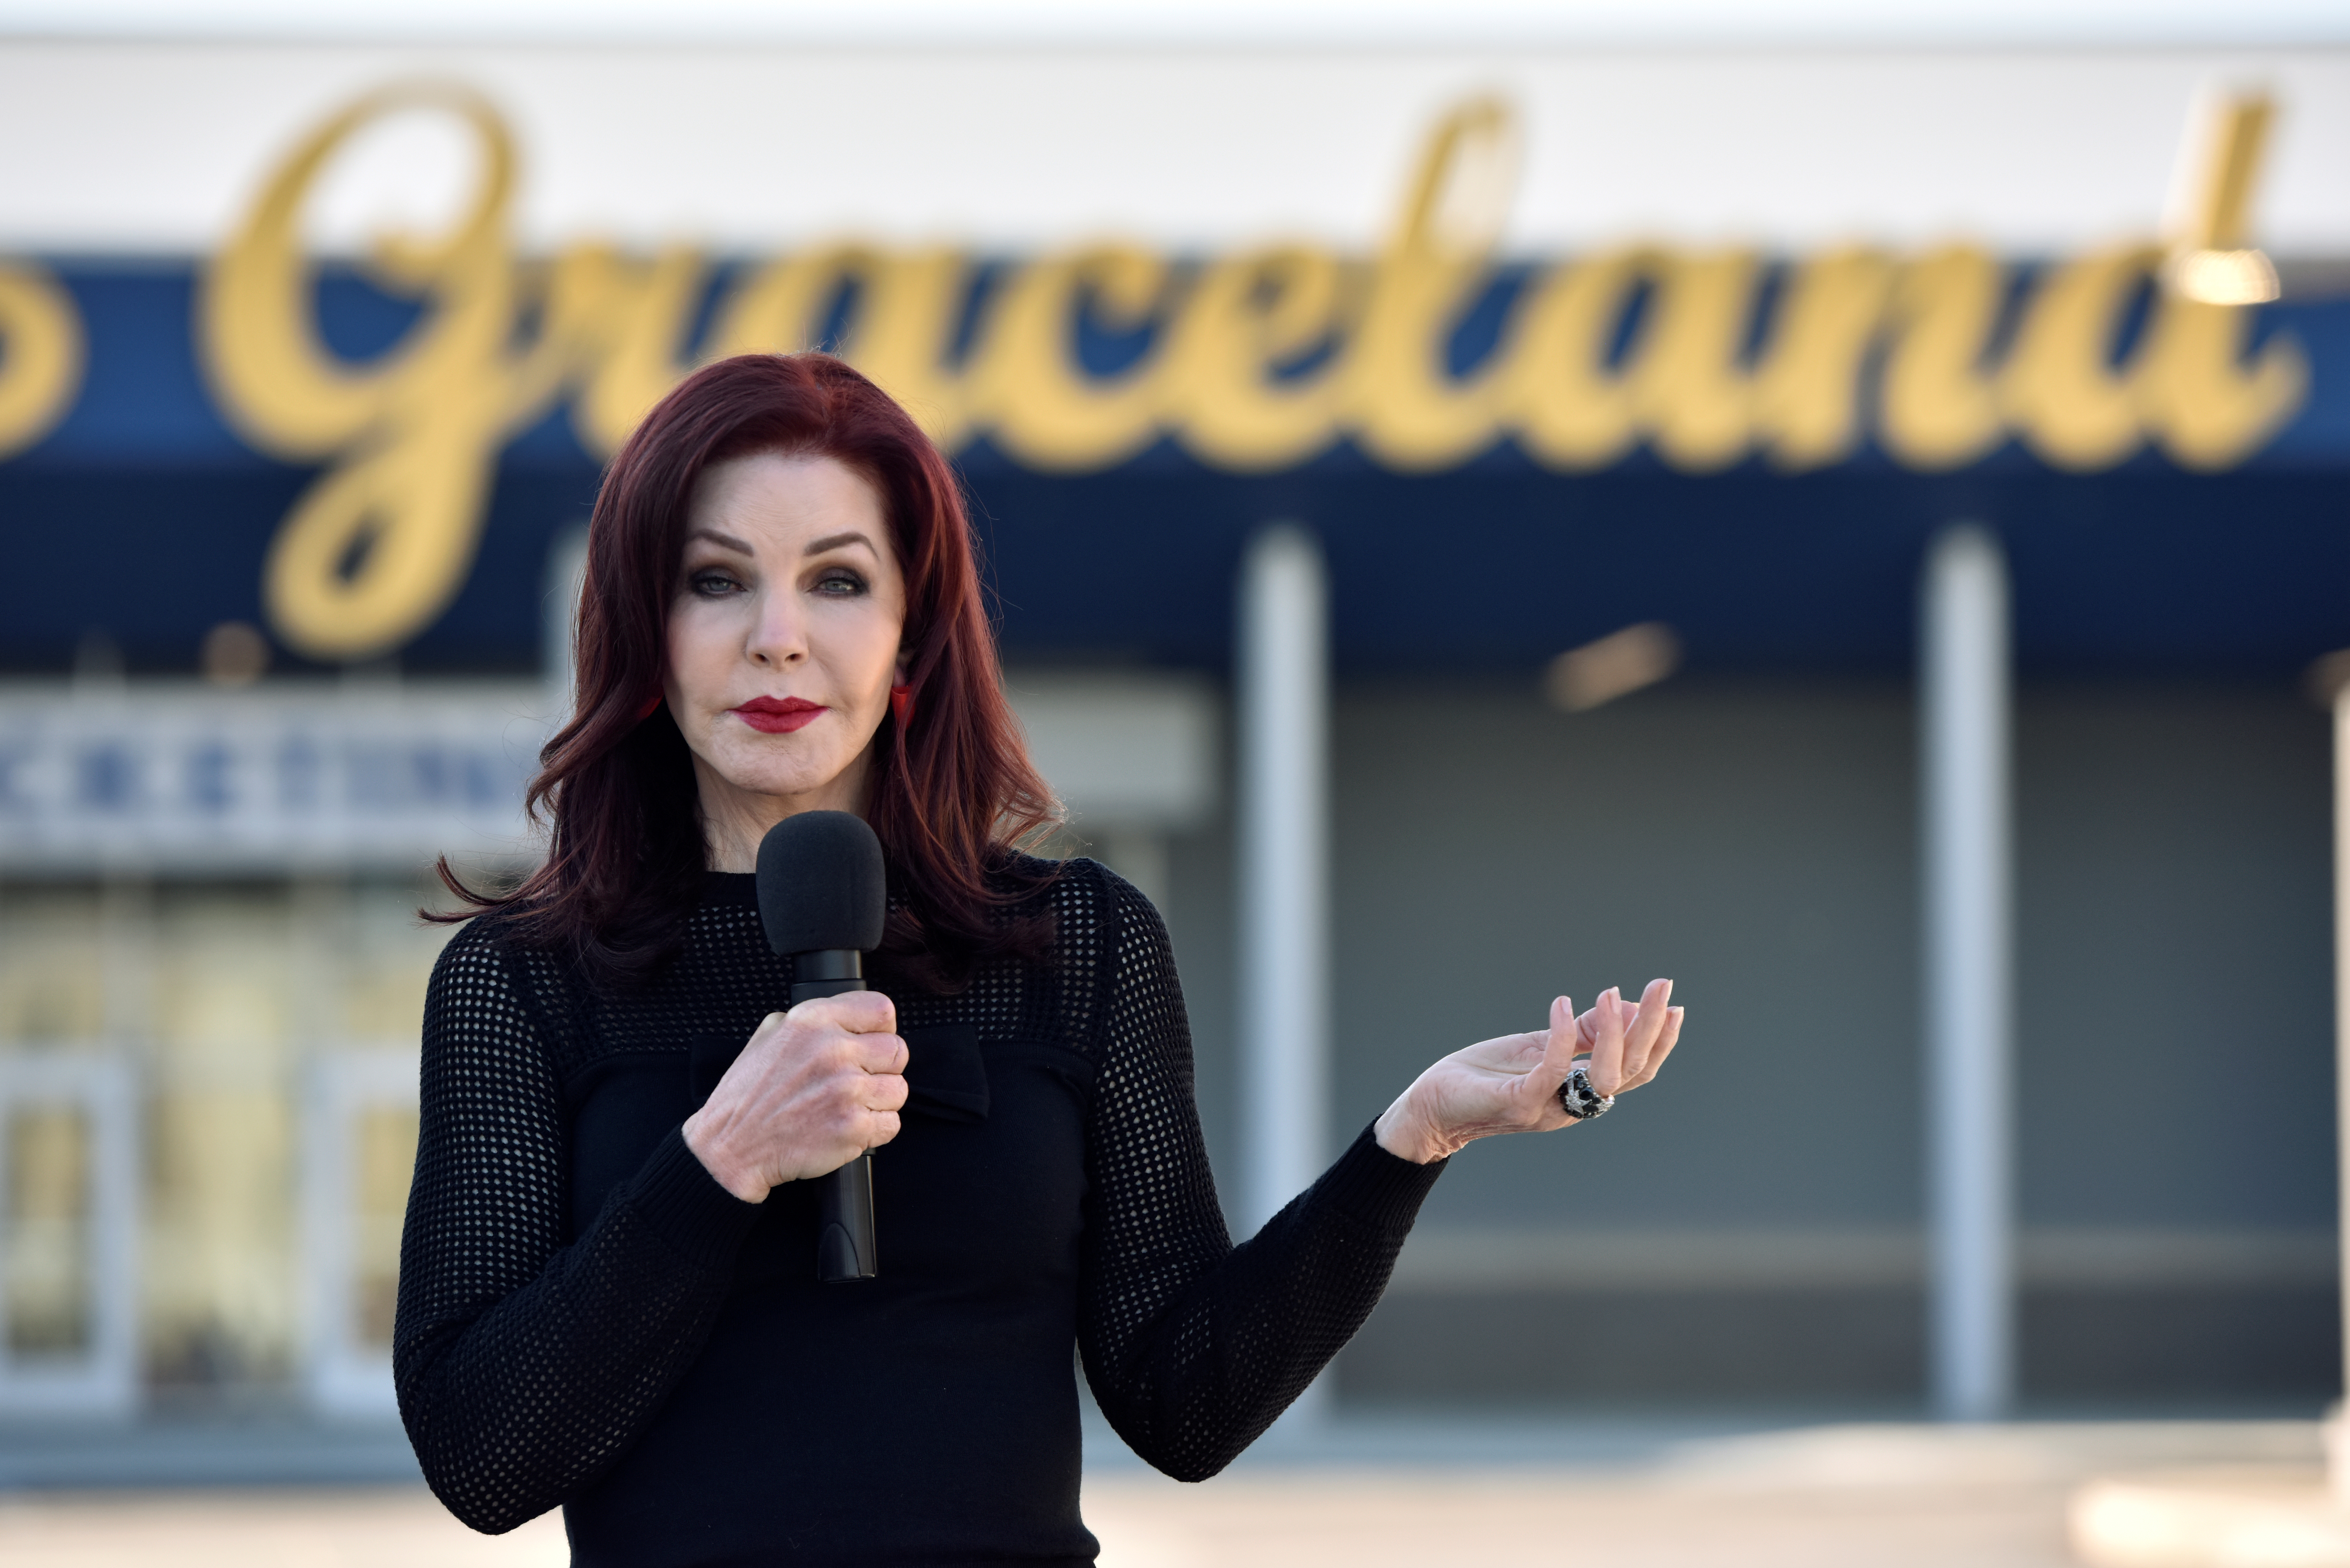 Priscilla Presley, wife of the late singer Elvis Presley, speaks to fans at the grand opening of the $45 million entertainment and museum complex in Memphis. Photo by Brandon Dill/Reuters